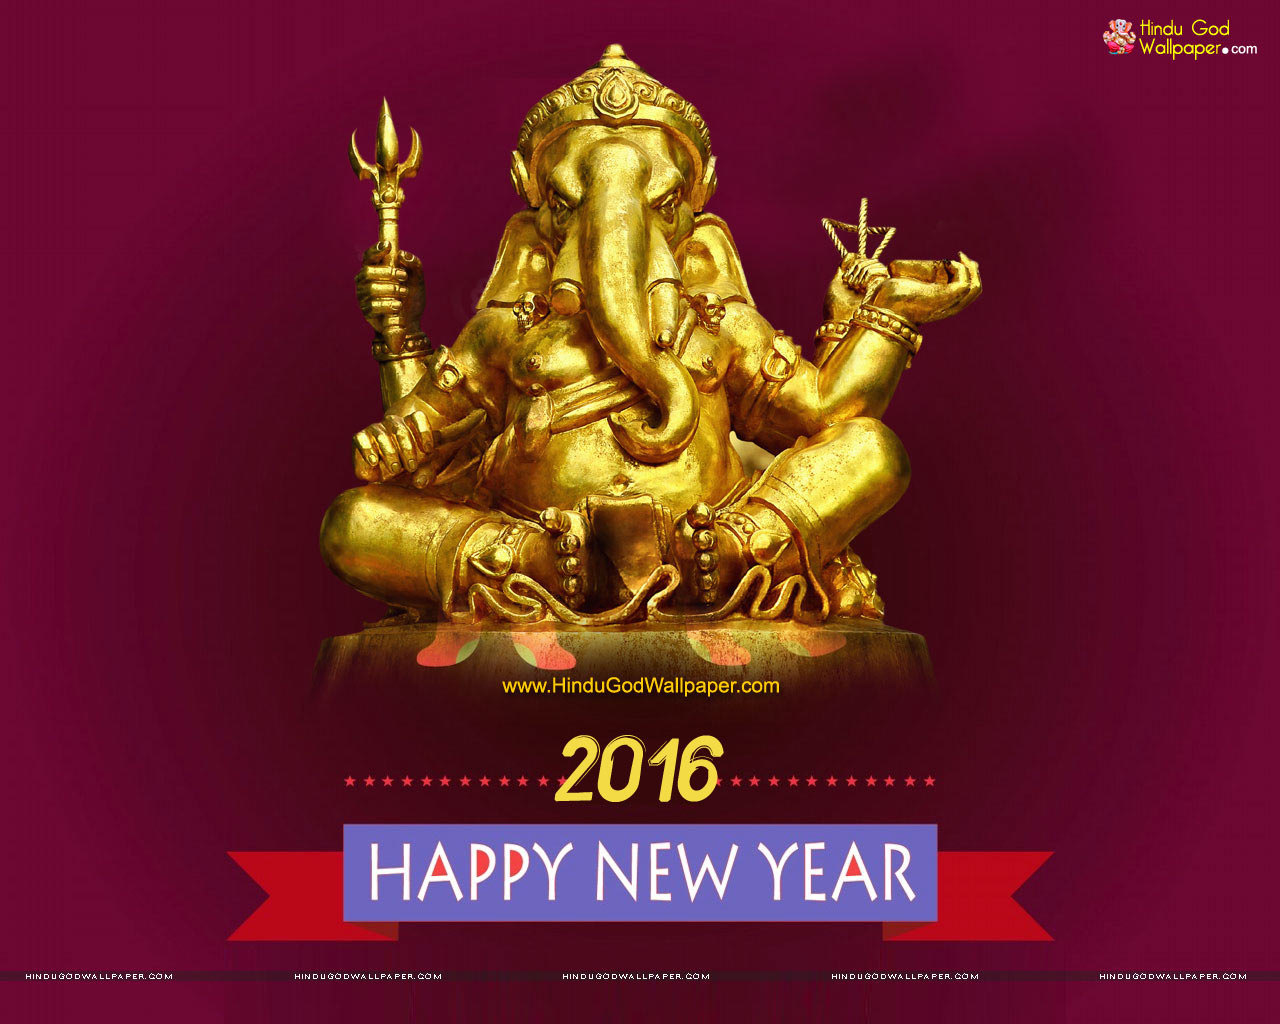 free download new year hindi new year hindu 2019hindihappy sayari happy in 1280x1024 for your desktop mobile tablet explore 71 wallpaper of happy new year 2015 happy new year year hindu 2019hindihappy sayari happy